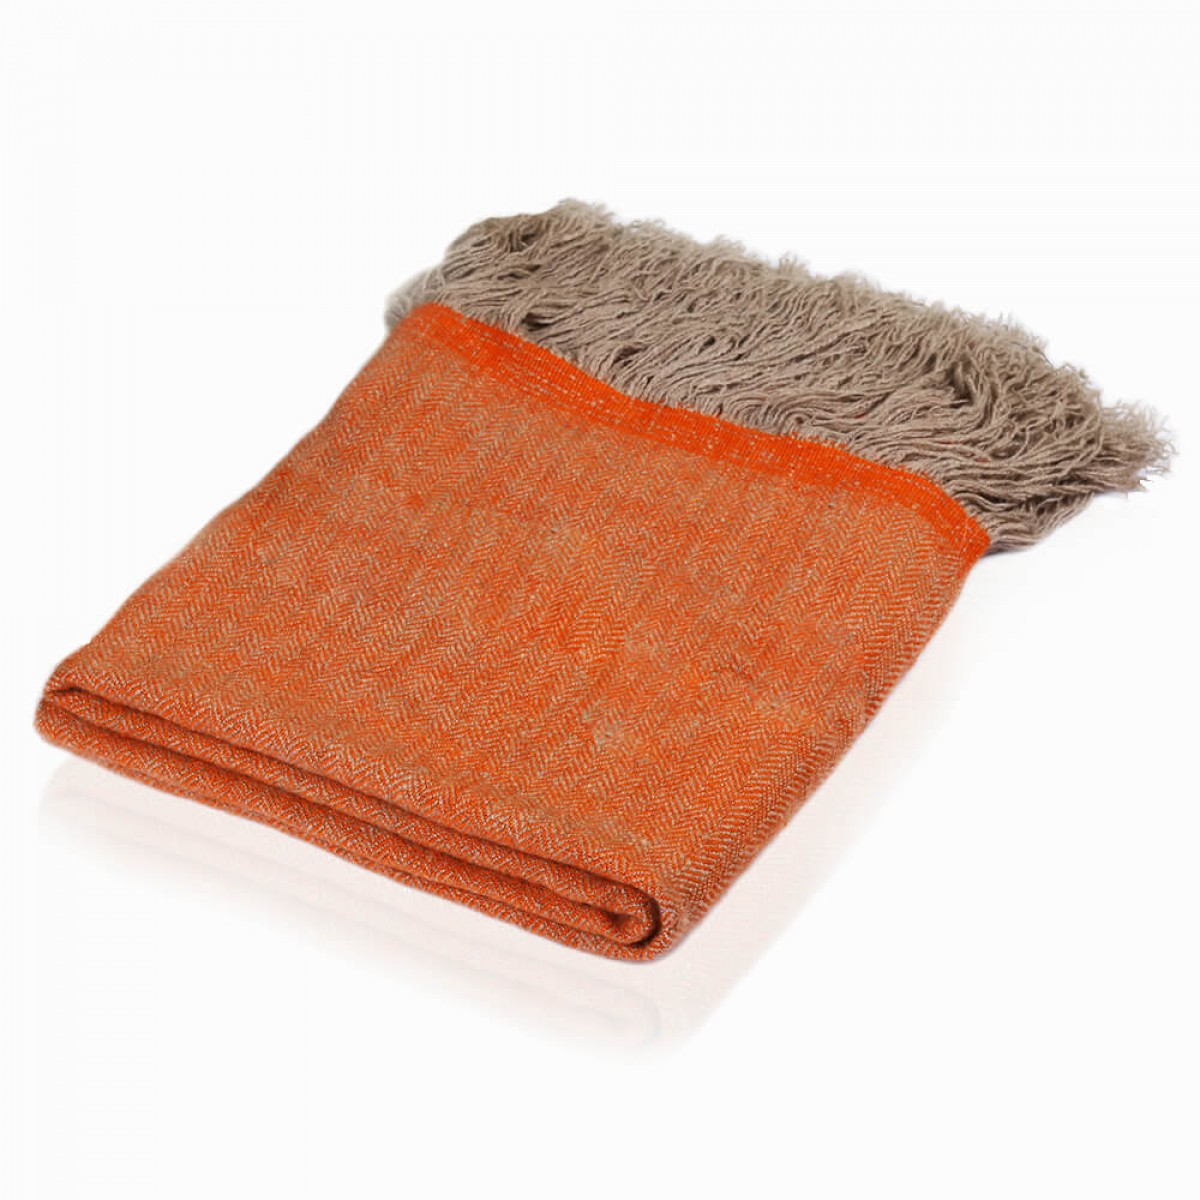 Cashmere Throw in Herringbone Weave - Mandarin